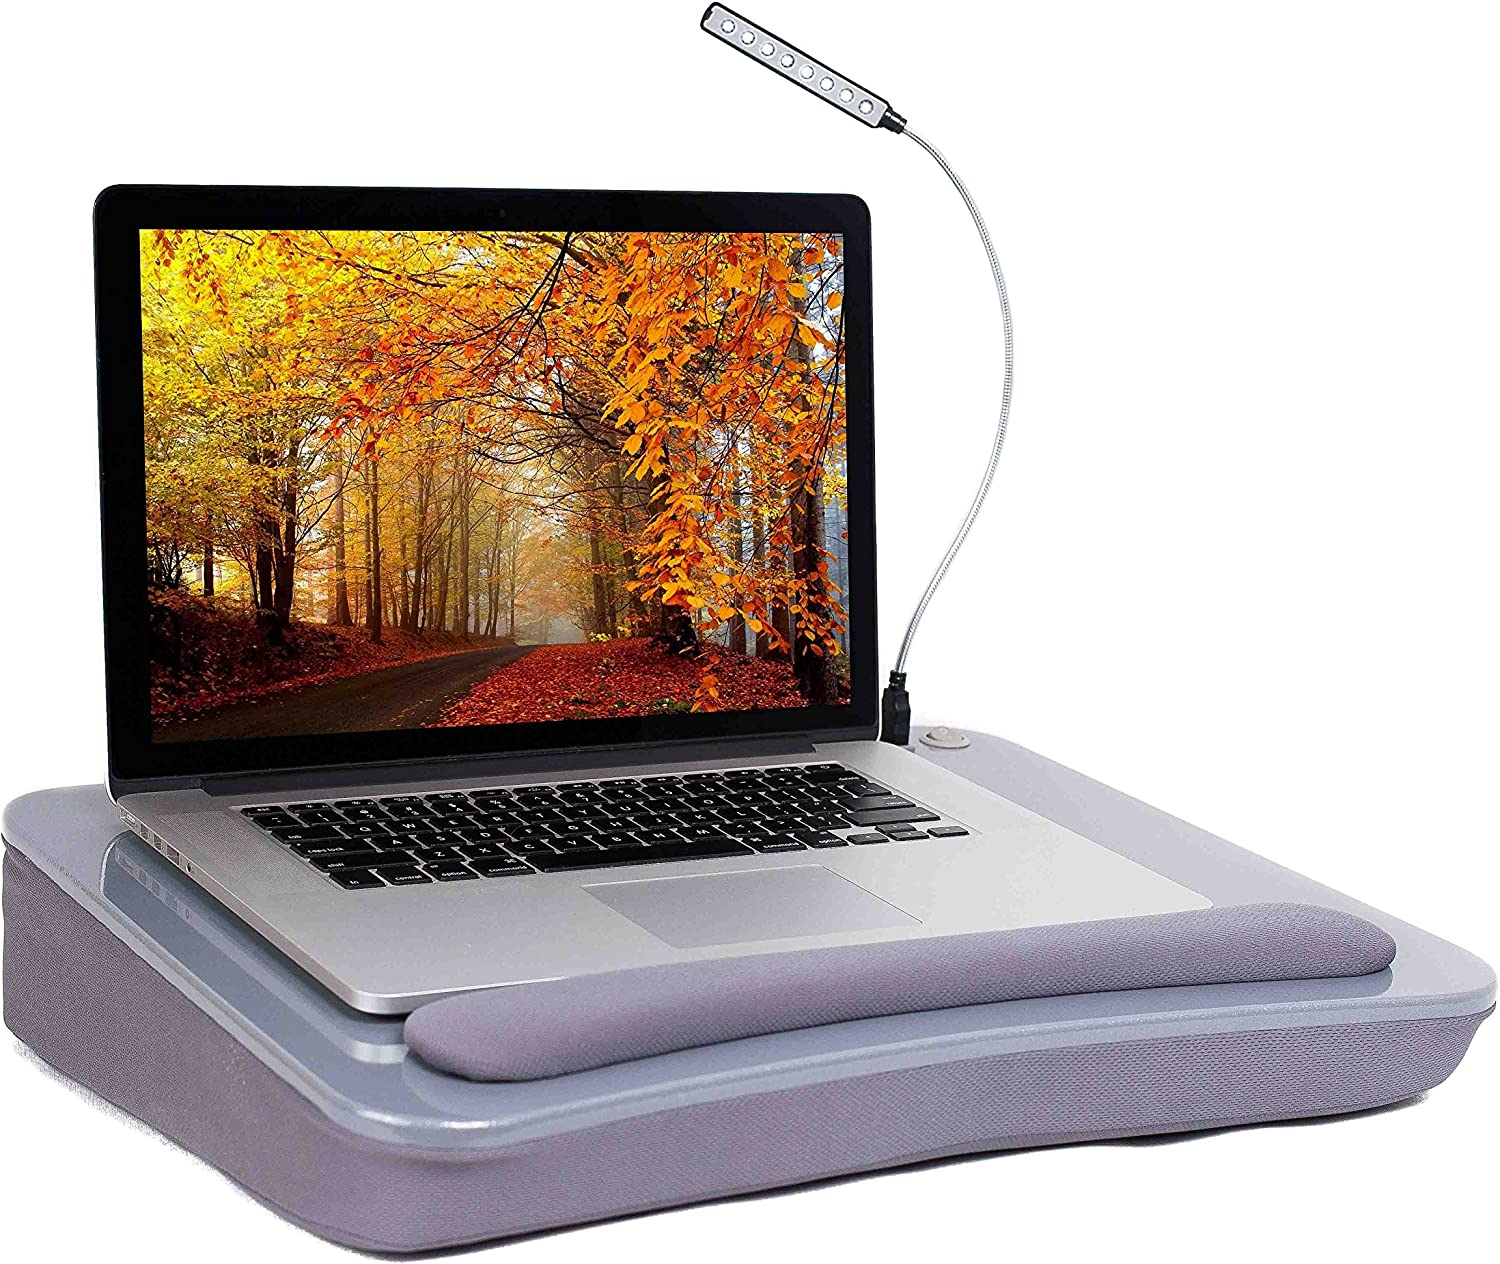 Sofia + Sam Lap Desk with USB Light (Silver) - Memory Foam Cushion - Supports Laptops Up to 17 Inches